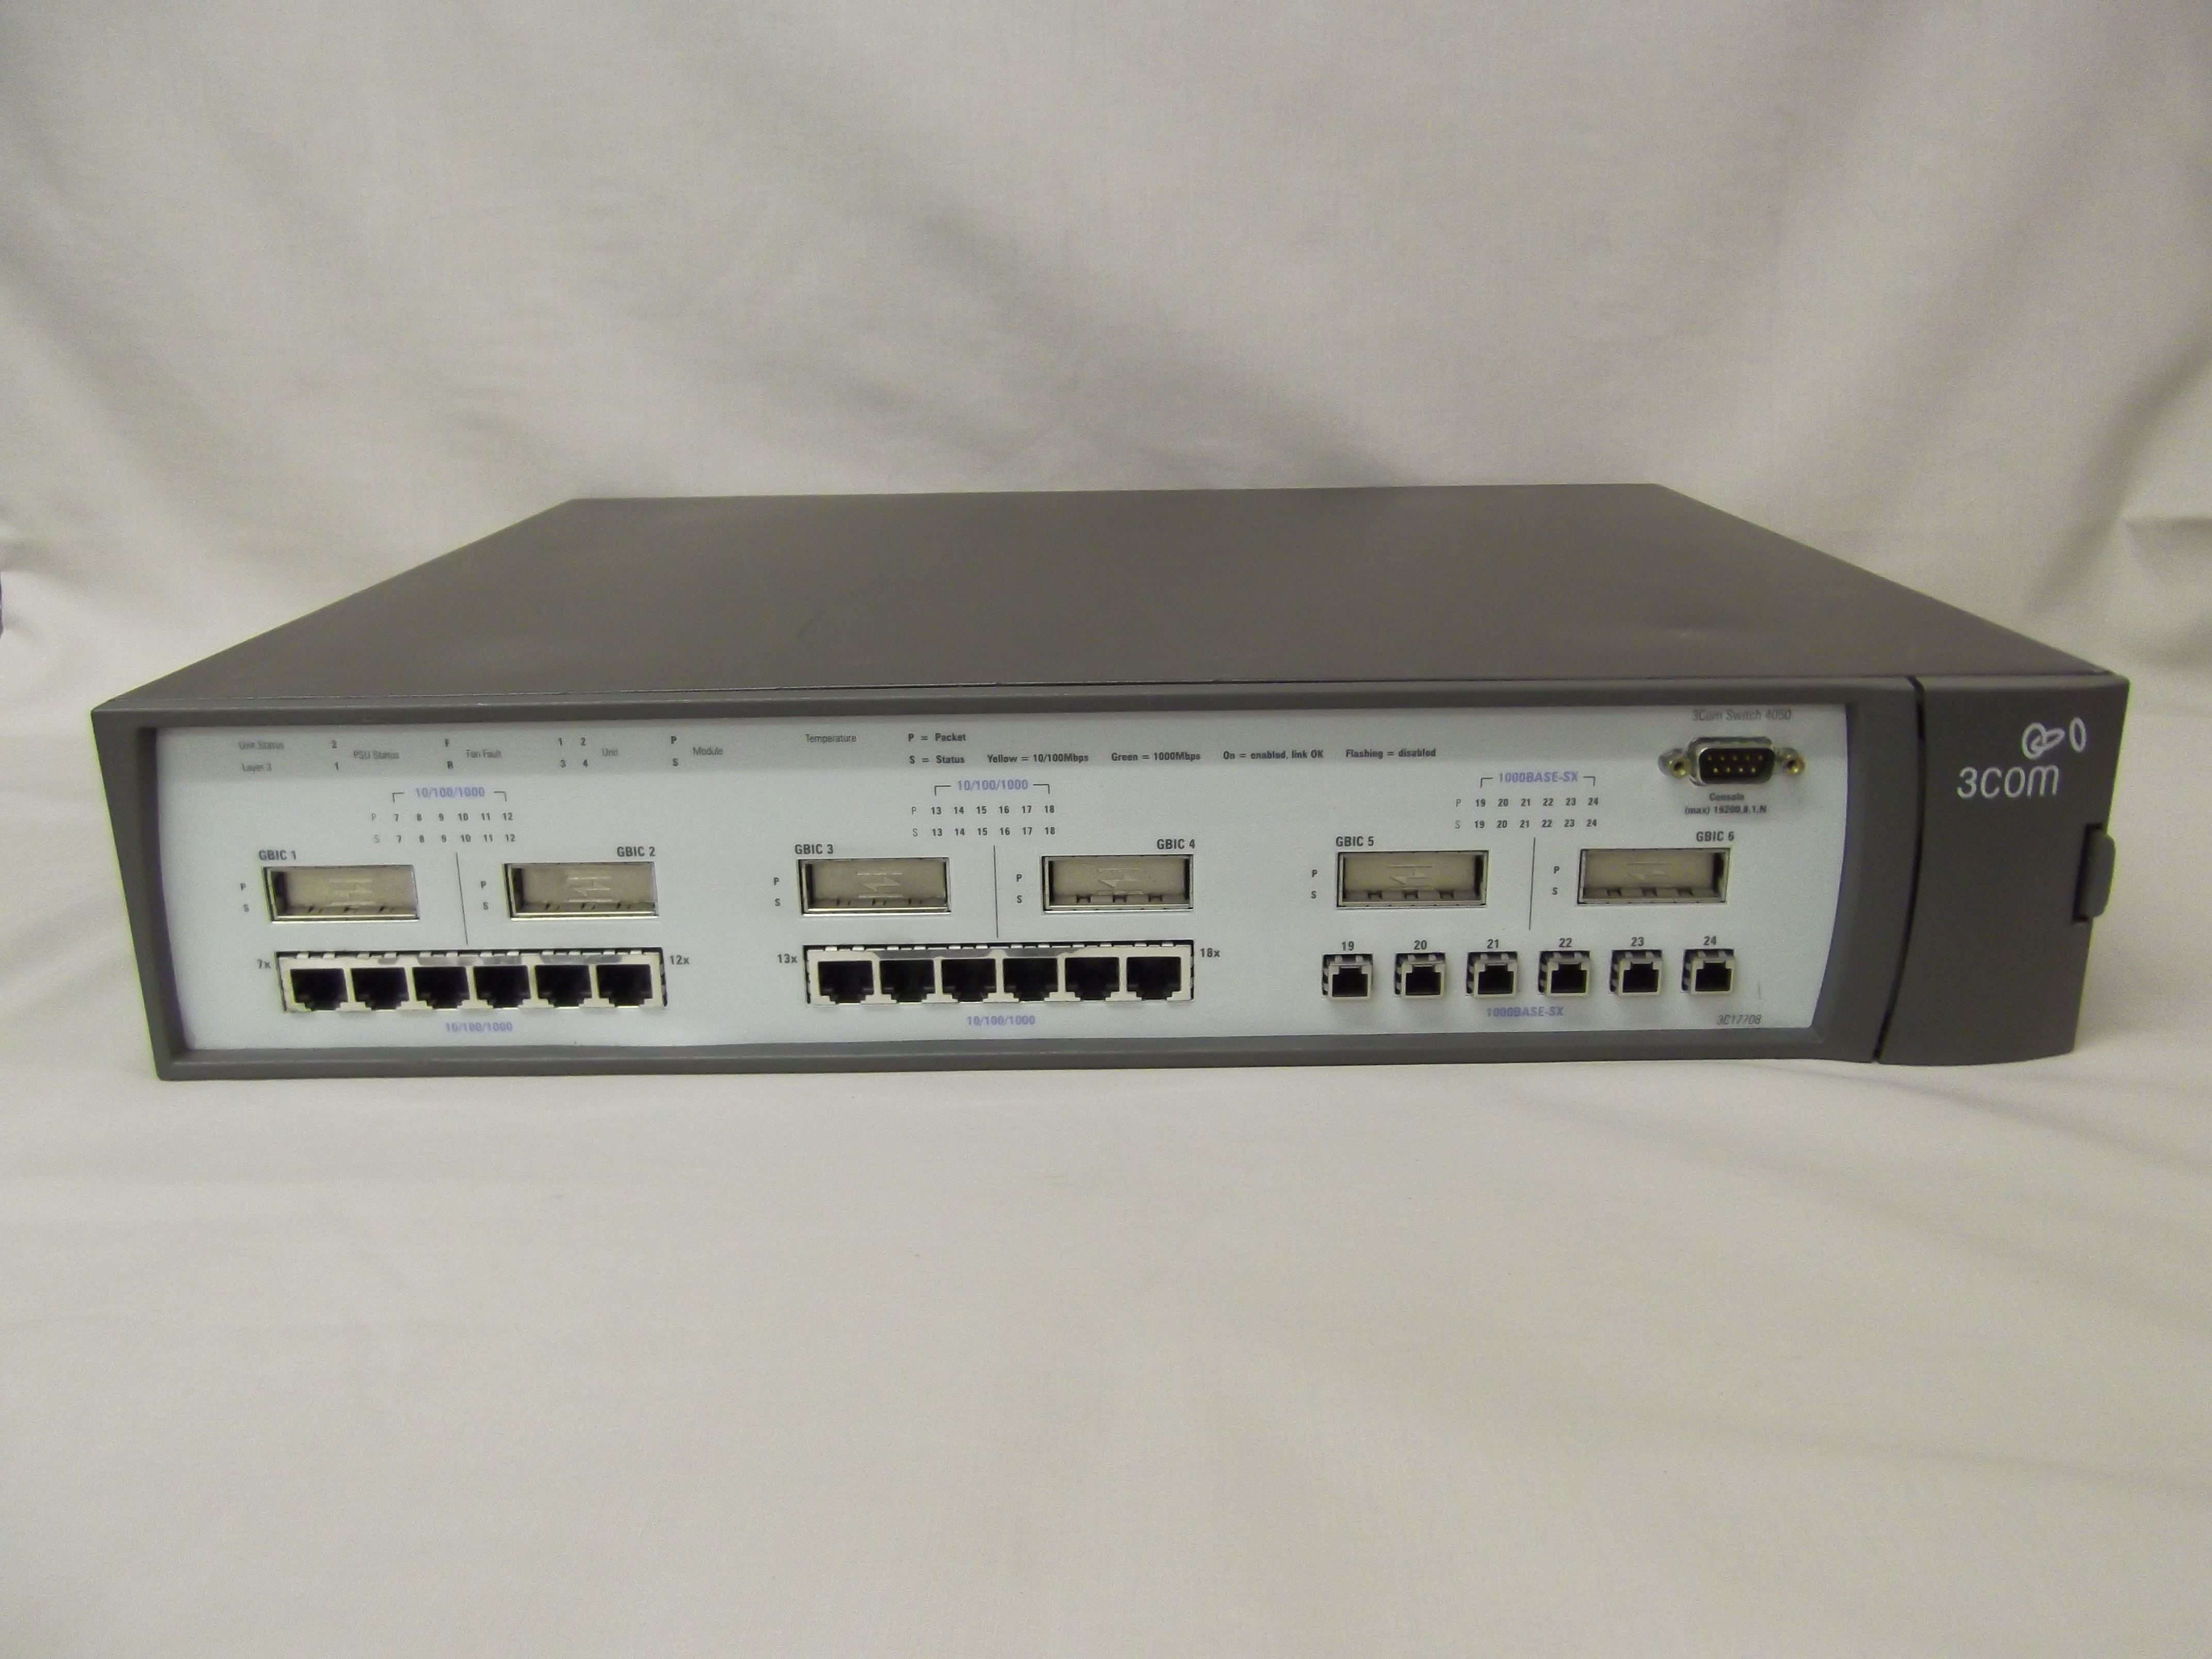 3c17708 je921a 3com superstack 3 switch 4050 it for 3 com switch